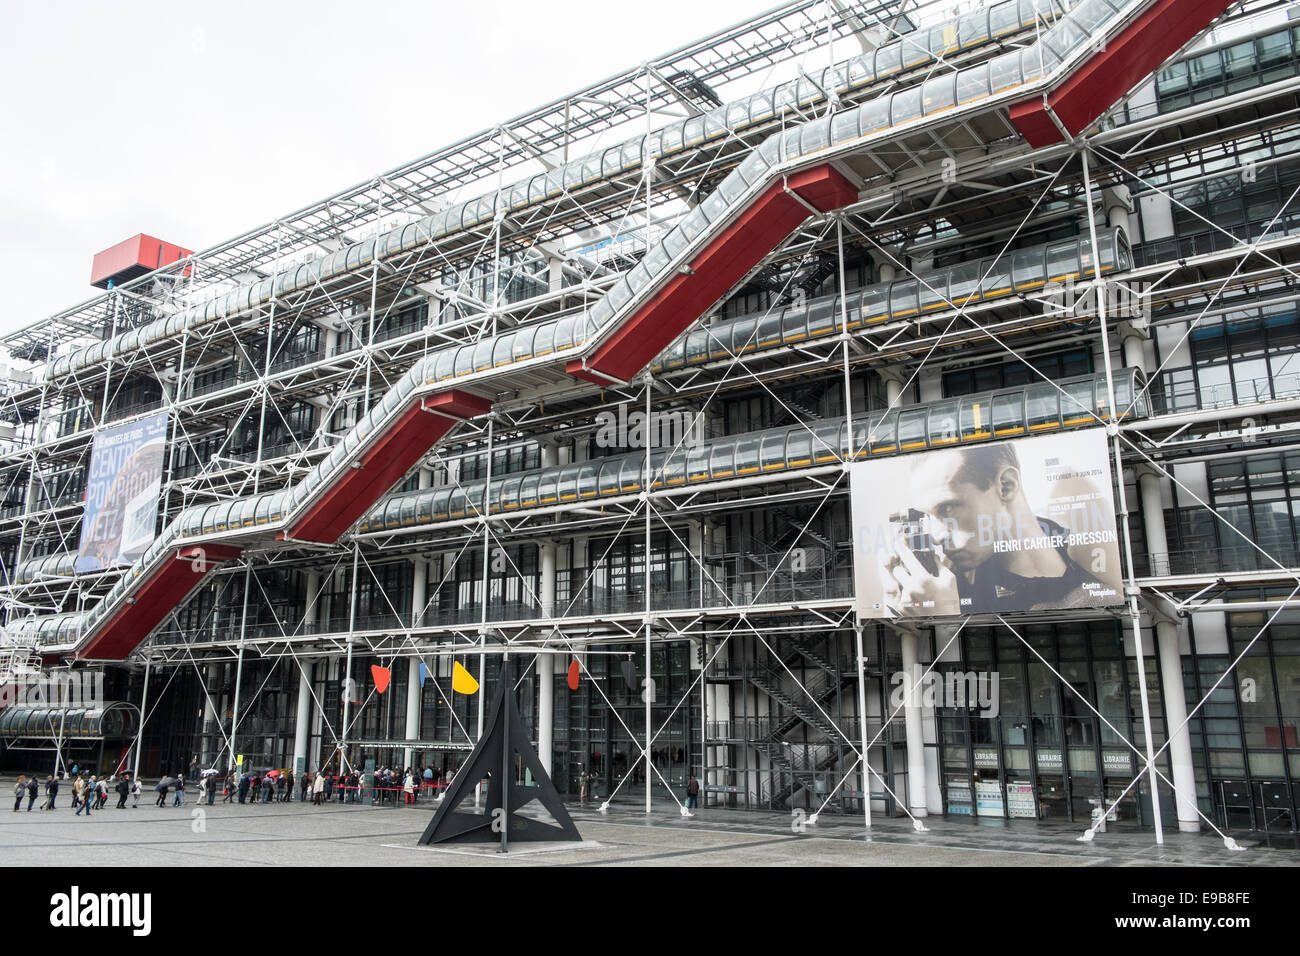 georges pompidou centre national modern museum stock photo royalty free